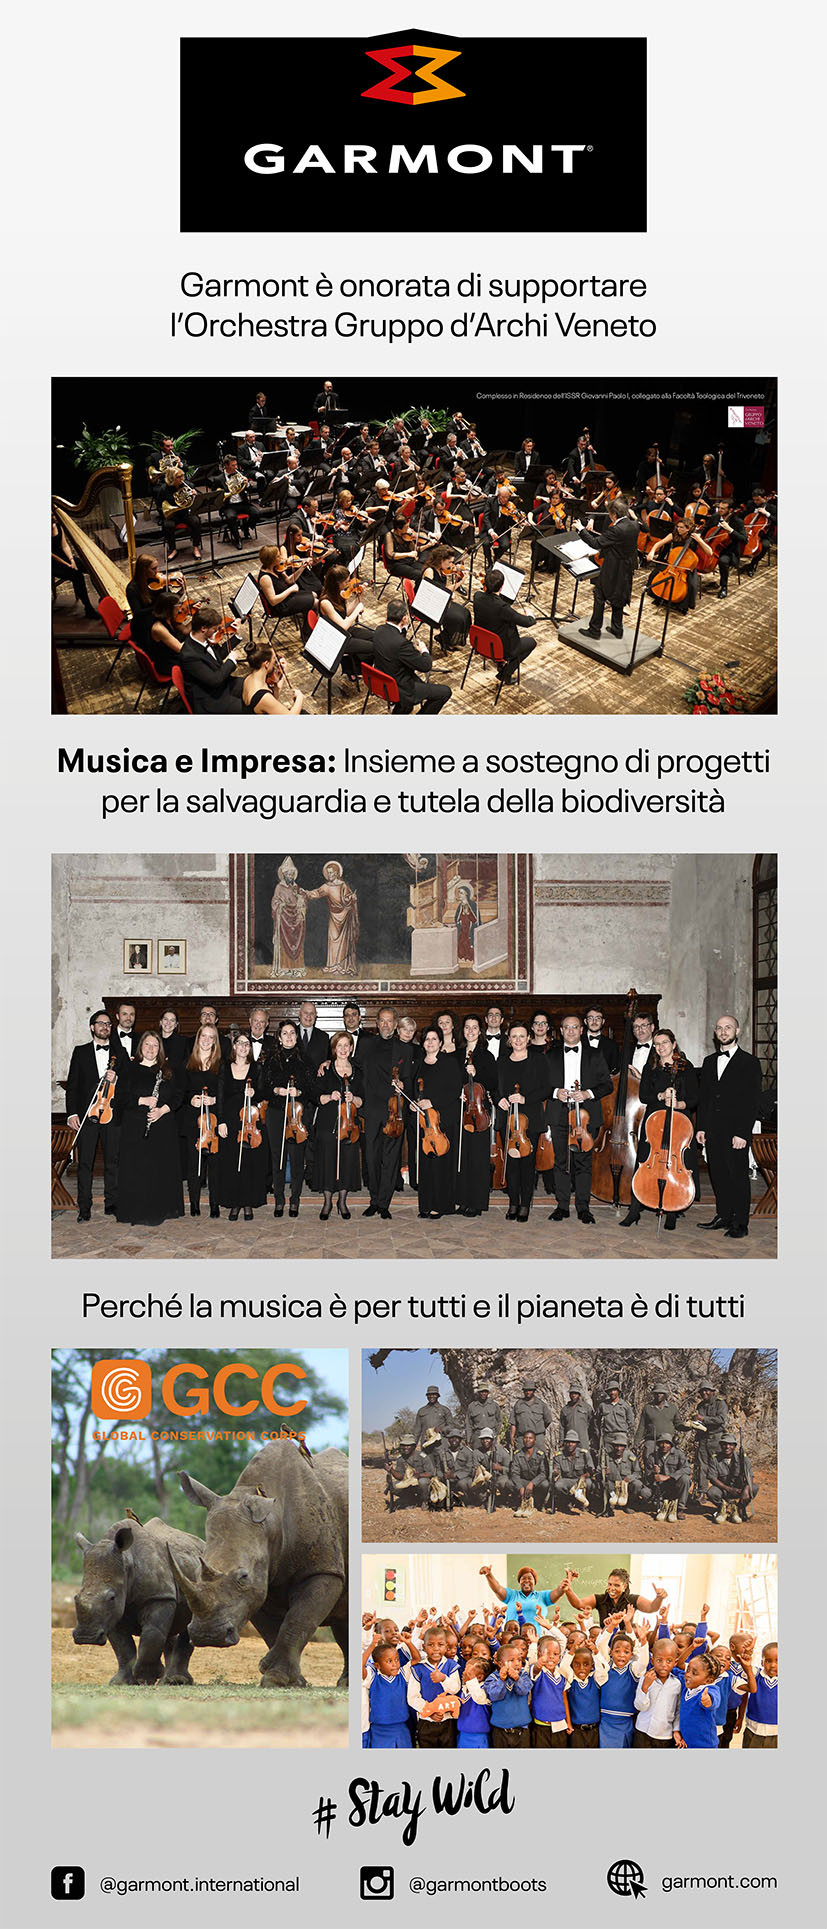 //gruppodarchiveneto.it/wp-content/uploads/2019/11/Roll-up-Orch.con-logo.jpg